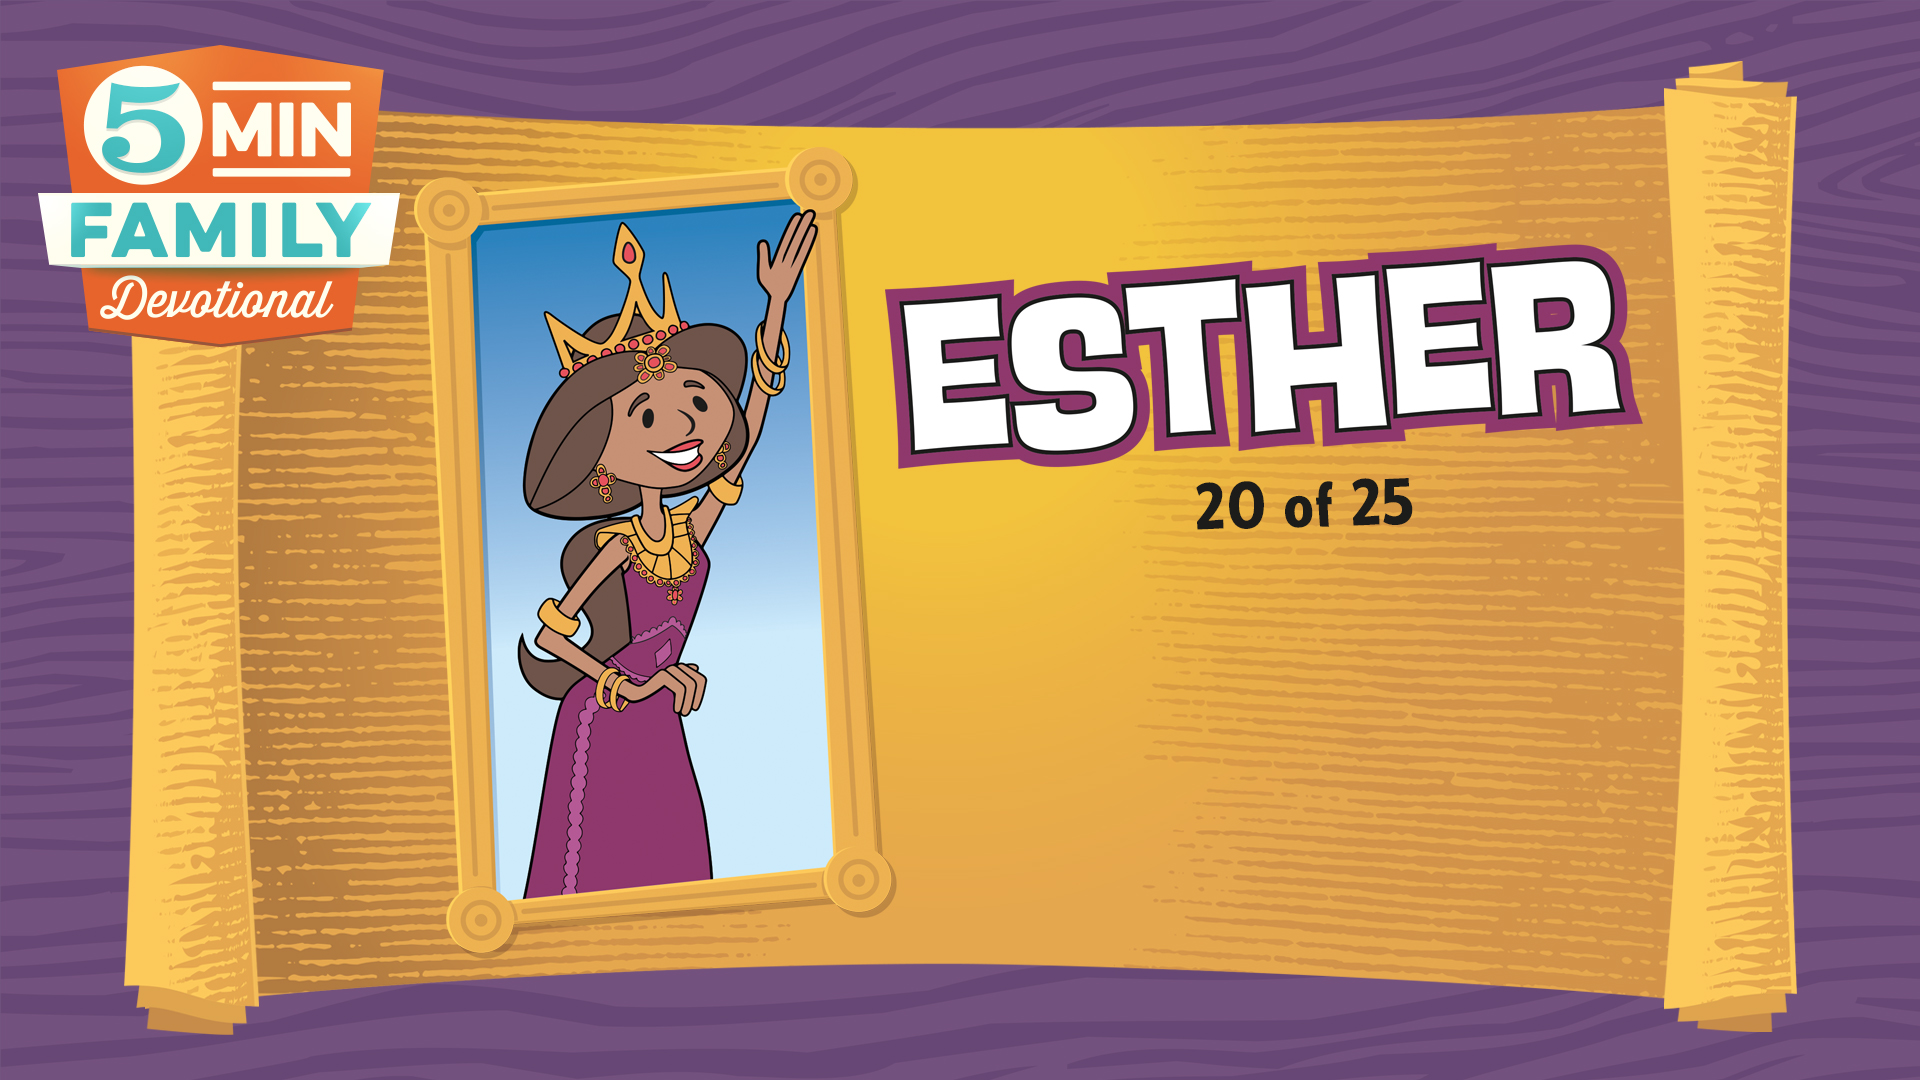 Esther god made her queen